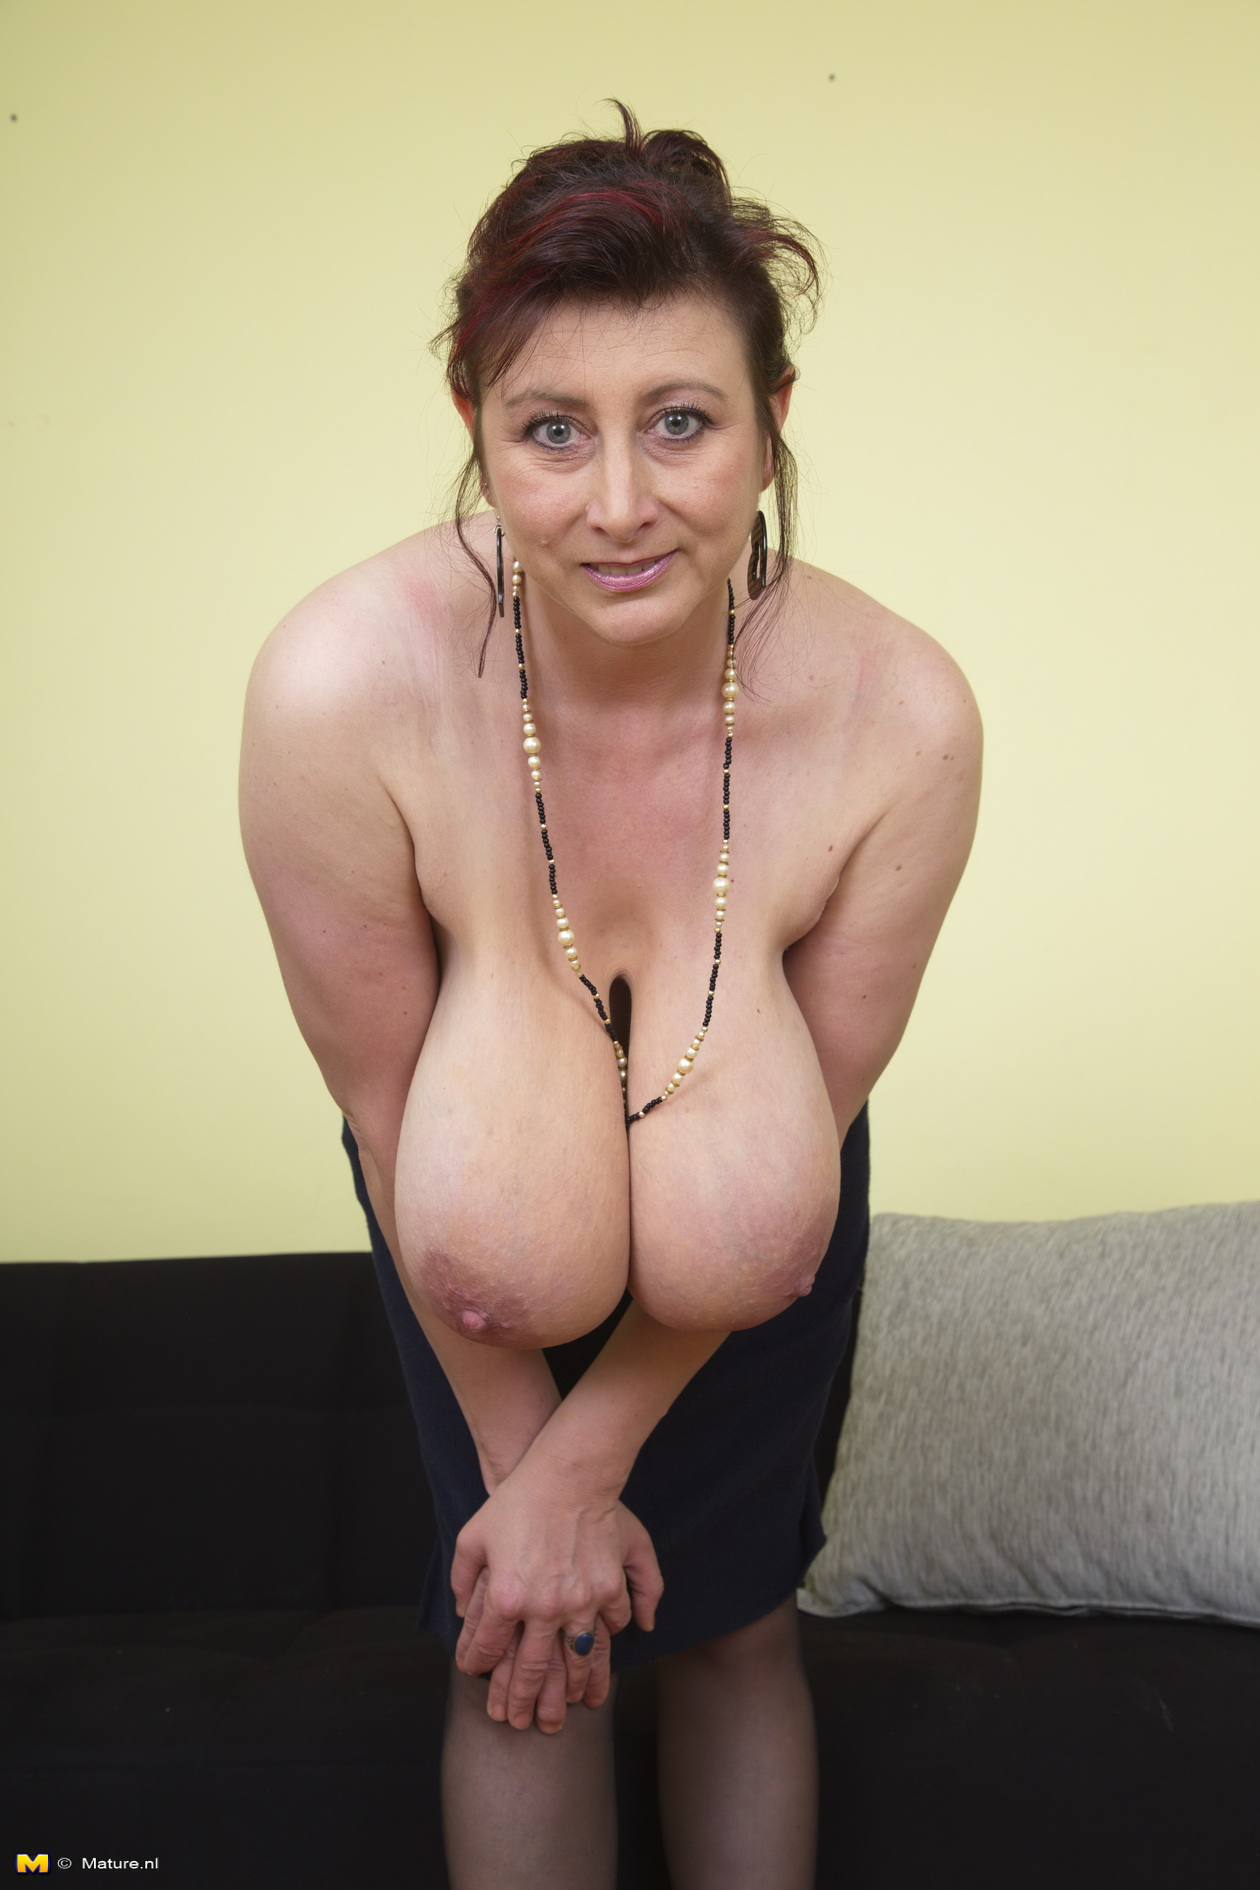 Much Horny MILF pussy masturbating have certain aspects